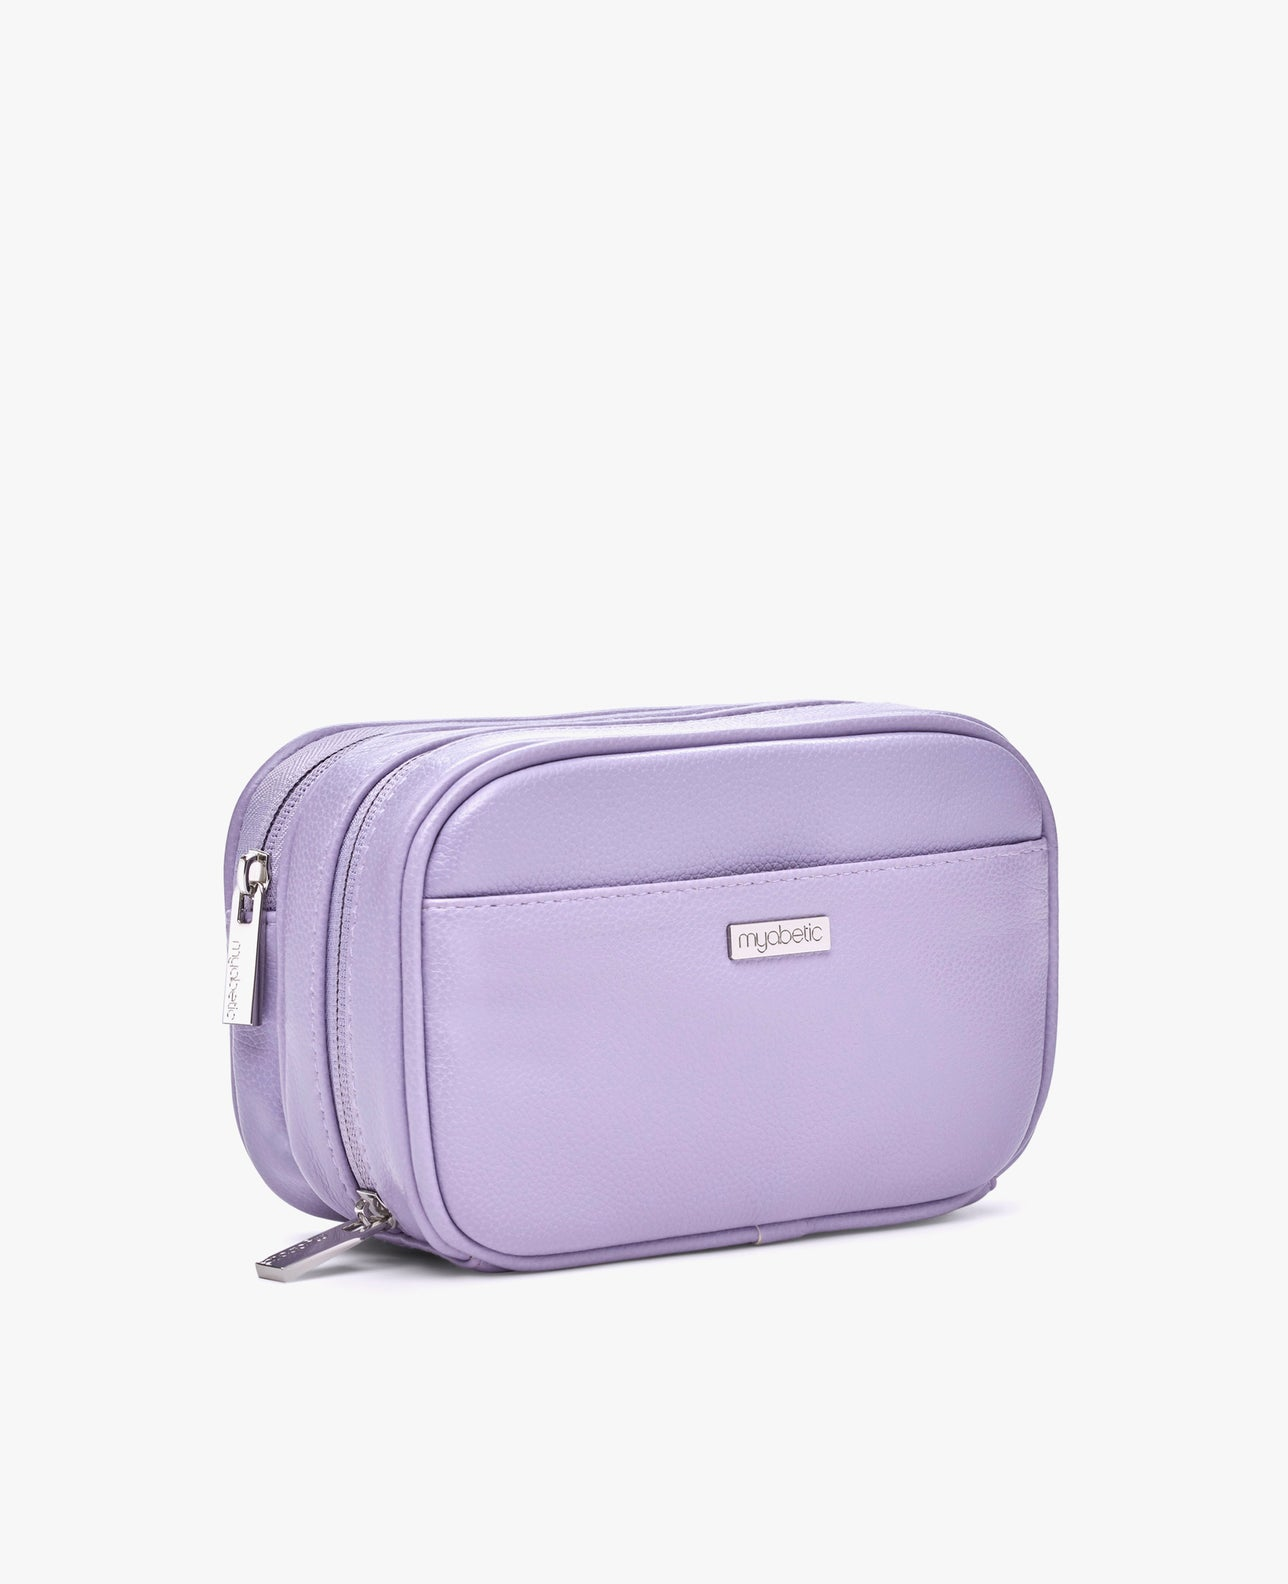 color:lavender